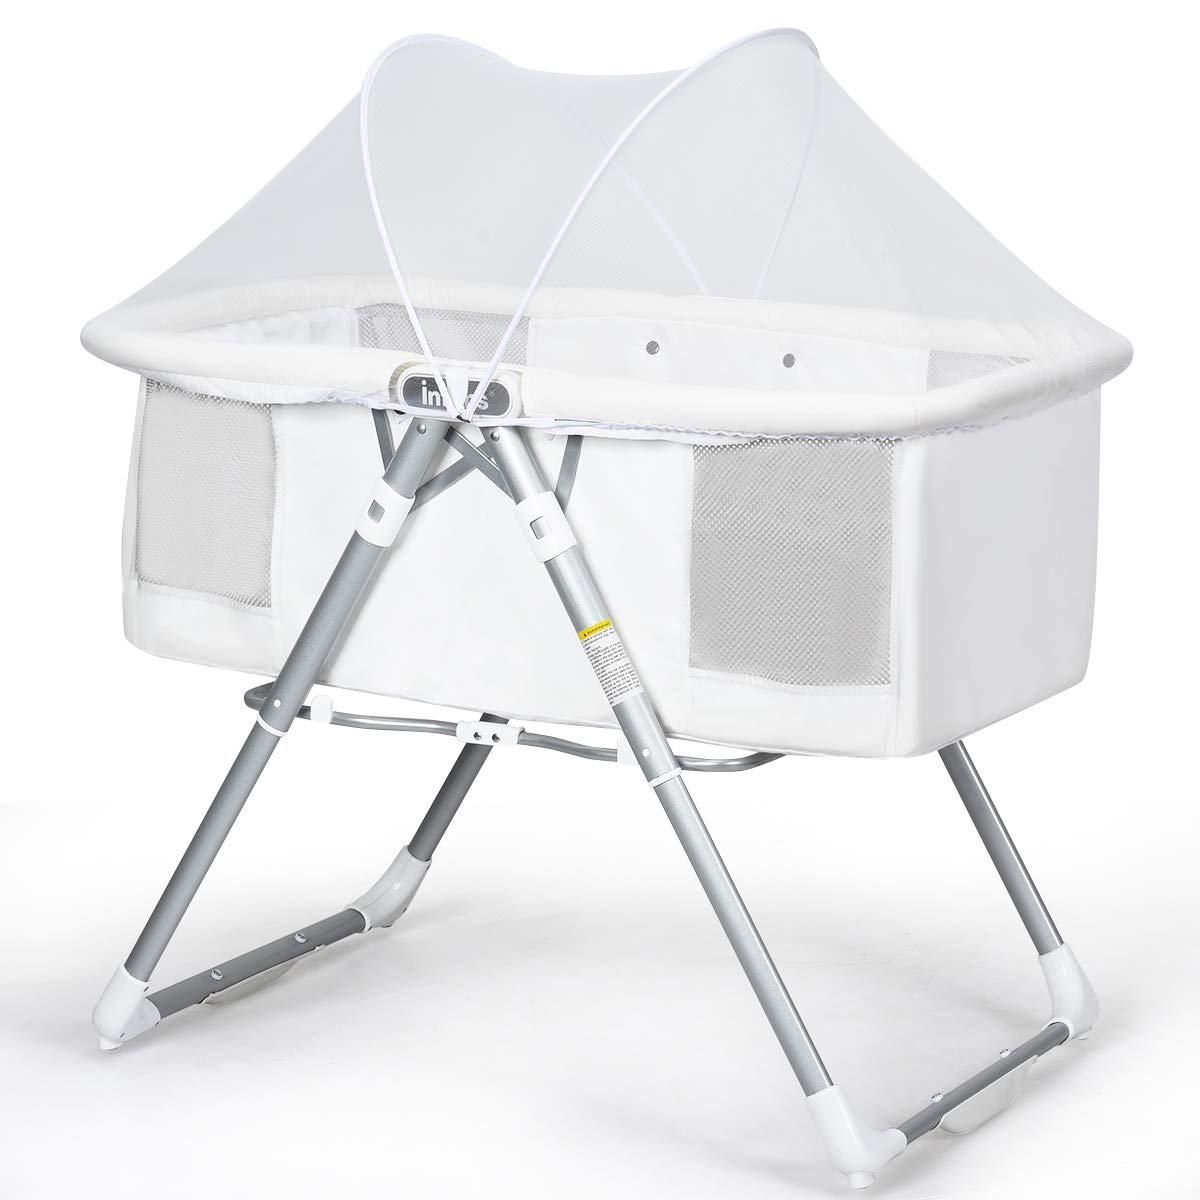 INFANS 2 in 1 Rocking Bassinet for Newborn Baby, One-Second Fold Travel Crib with Detachable & Thicken Mattress, Height Adjustable Legs, Mosquito Net, Cradle with Rock Mode & Stationary (White)